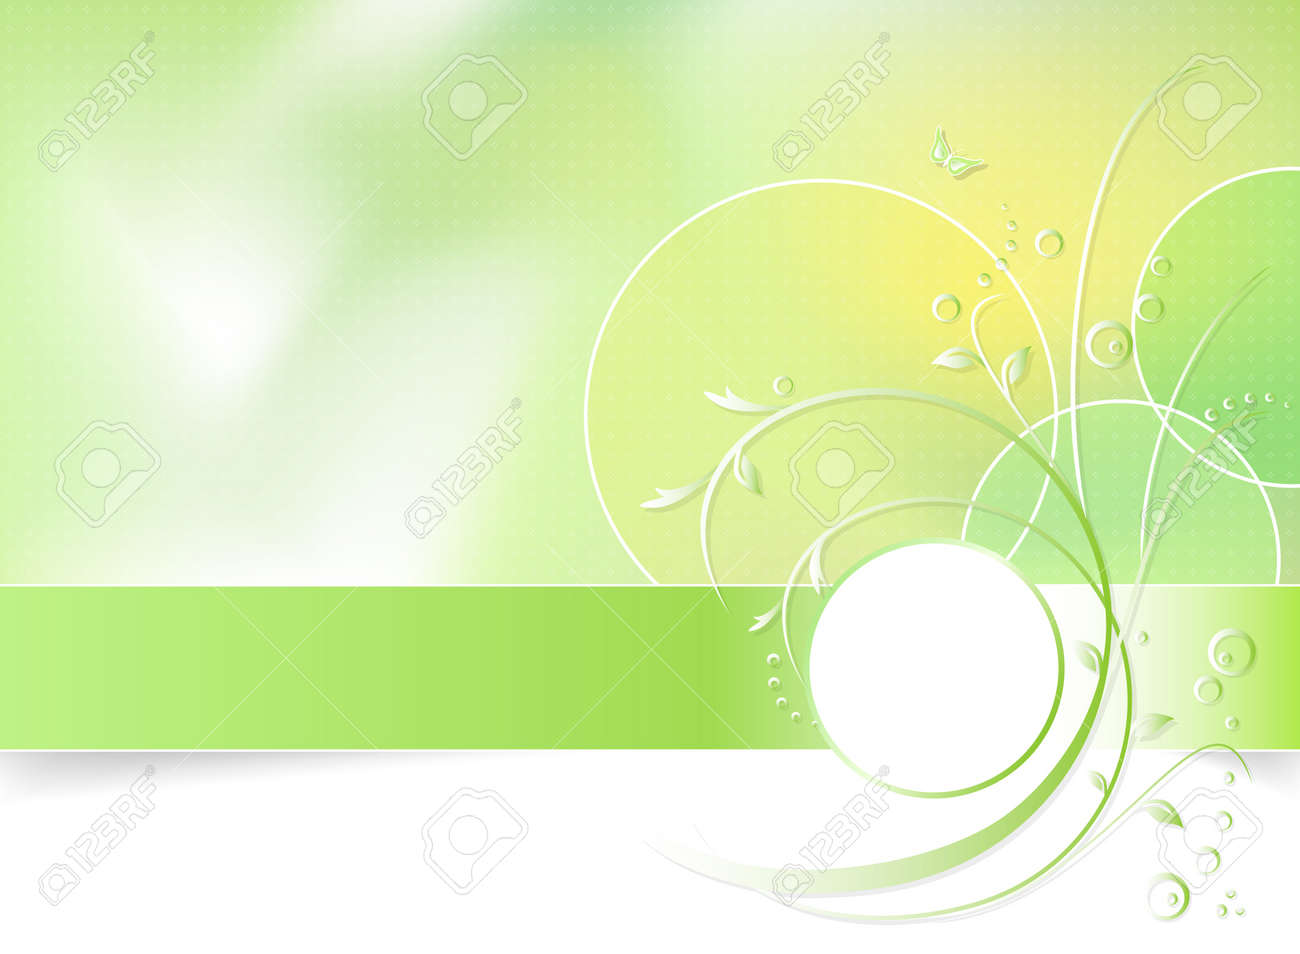 Green spring flower background, greeting card - abstract floral design in white, green and light yellow color - vector illustration Stock Vector - 9236851